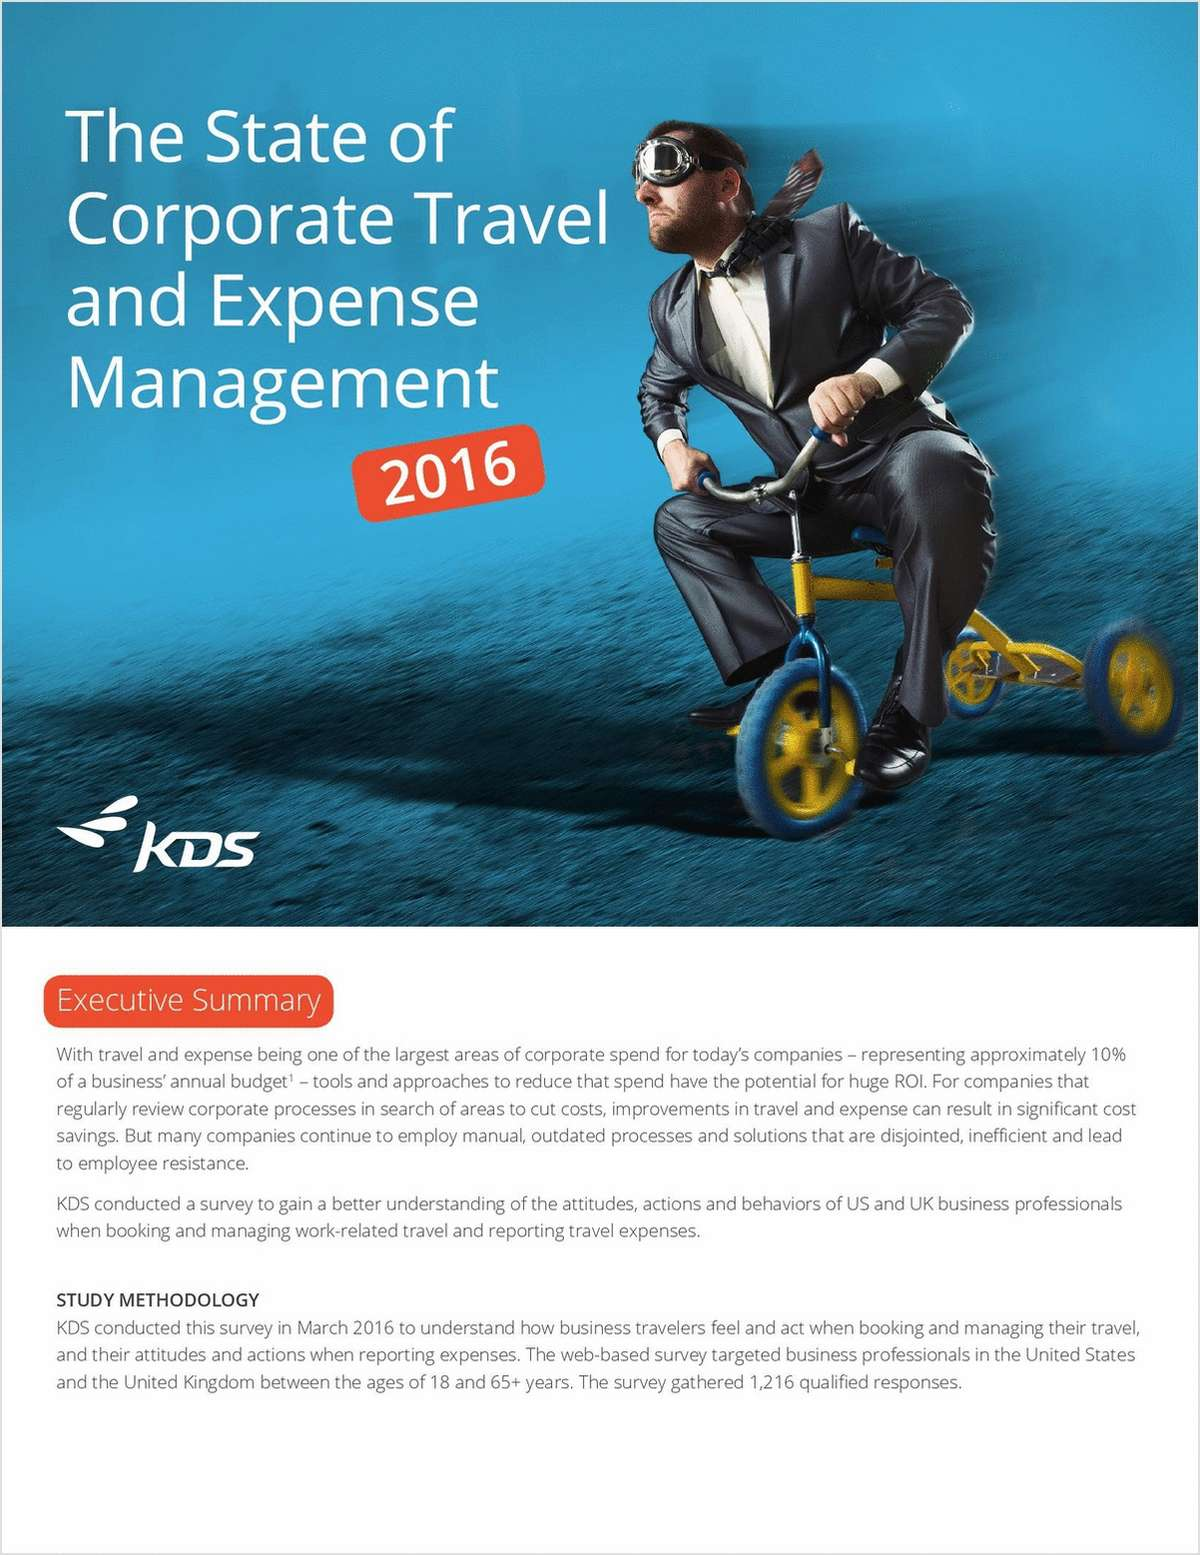 The State of Corporate Travel and Expense Management